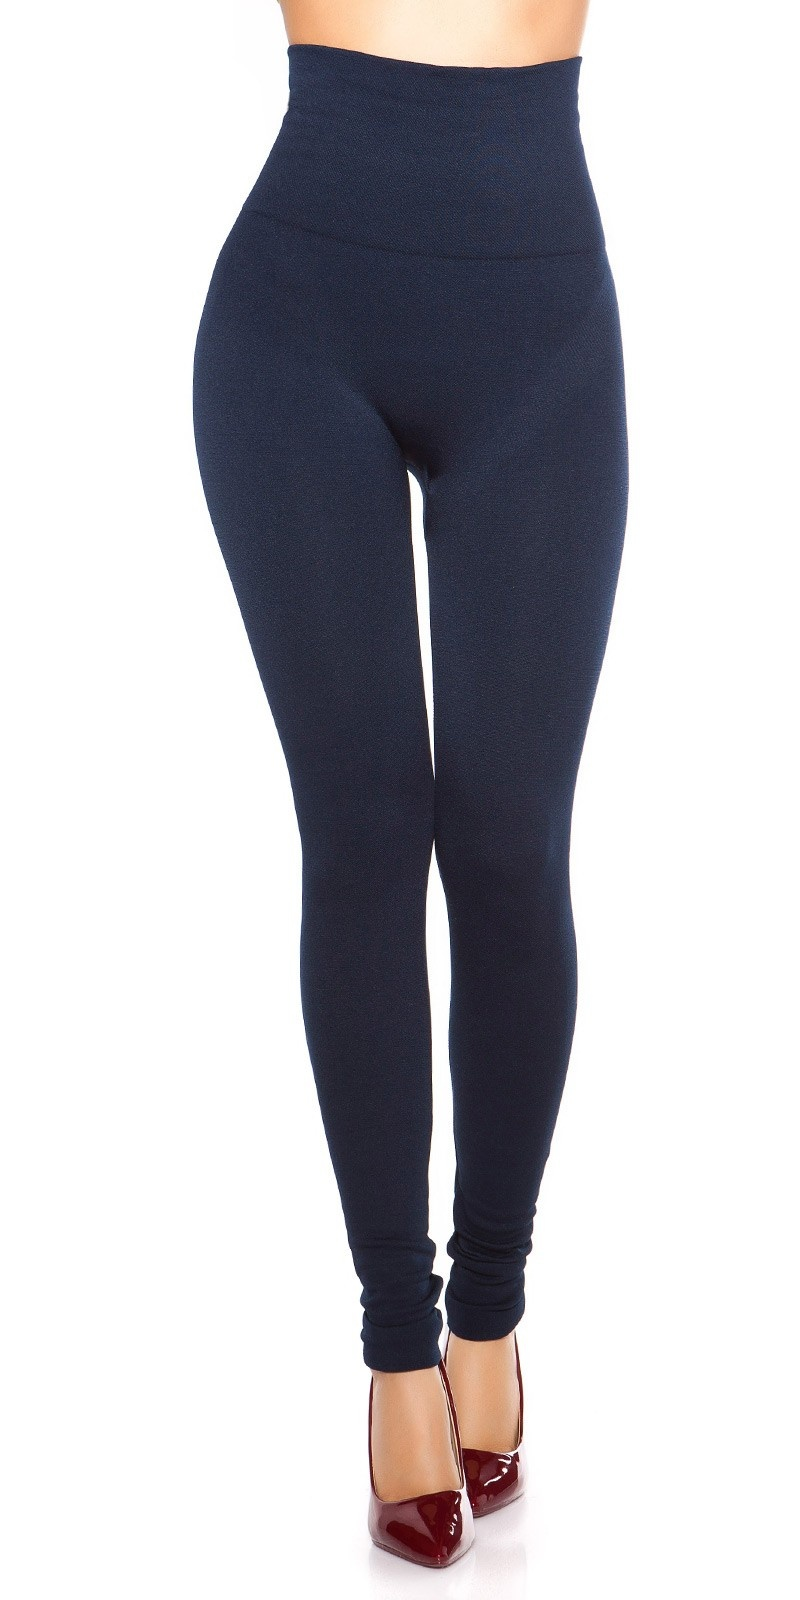 Sexy Thermo Shape High Waist Leggings Navy